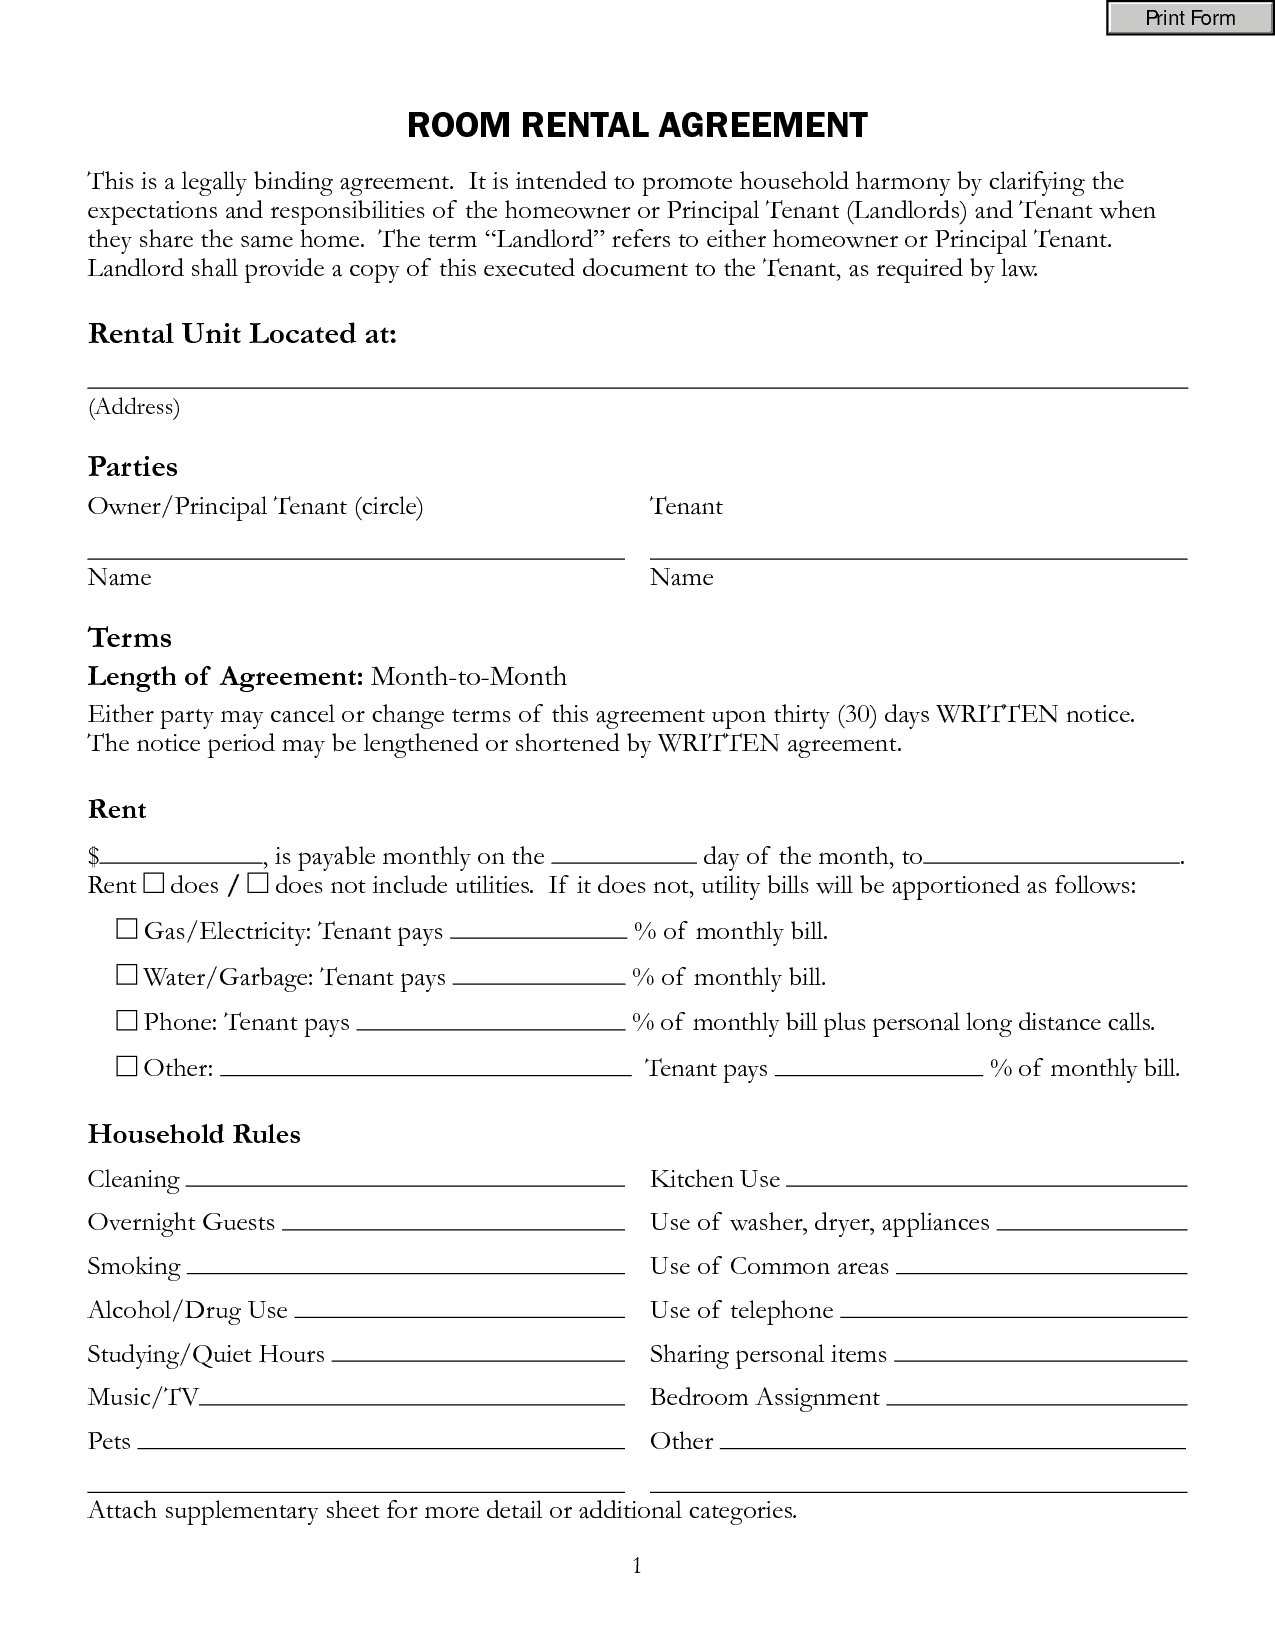 renters contract template free - top 5 resources to get free rental agreement templates